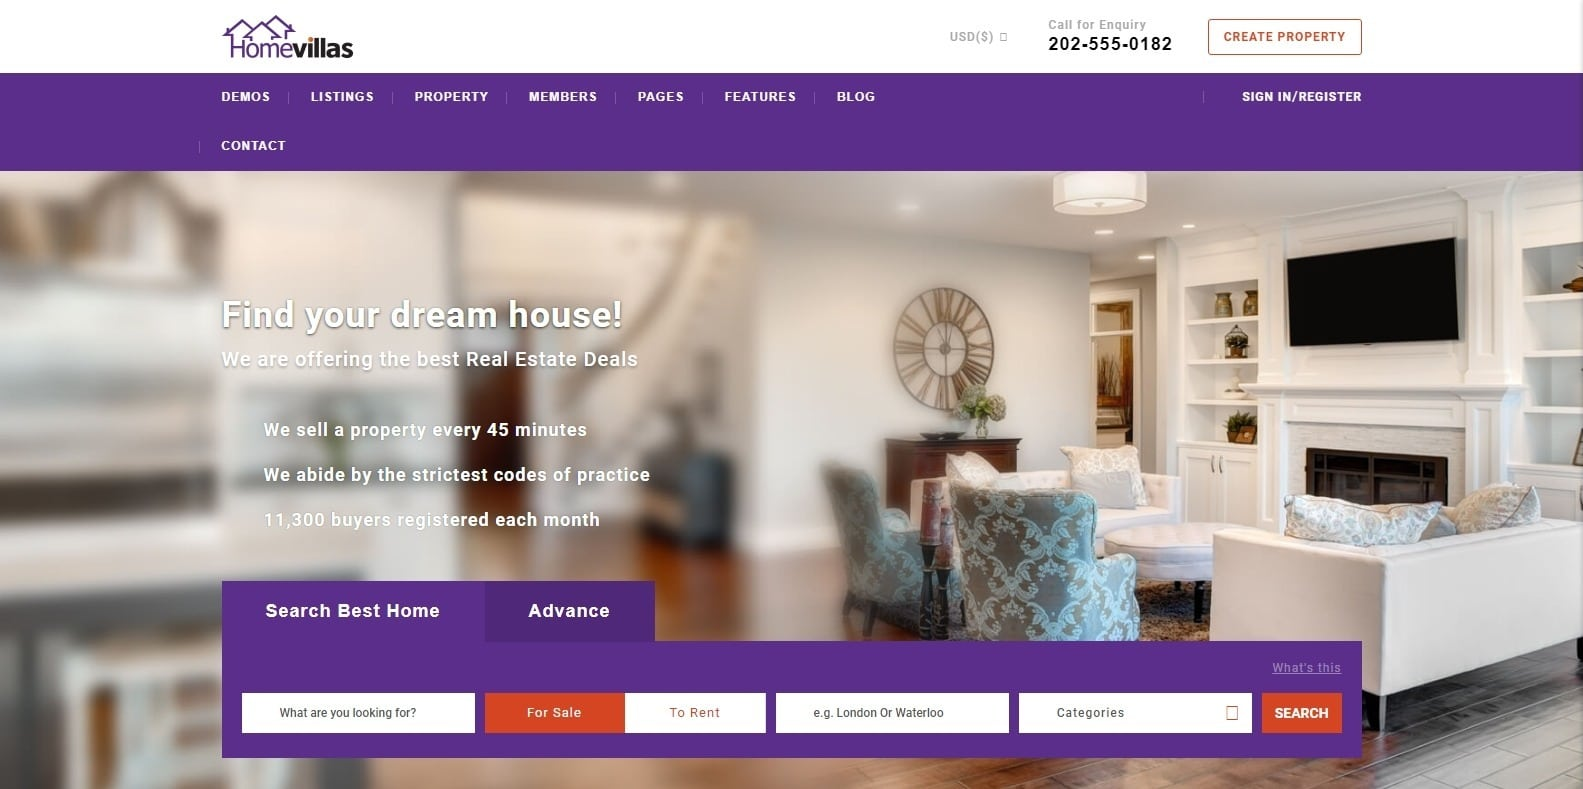 home-villas-wordpress-mortgage-broker-website-template